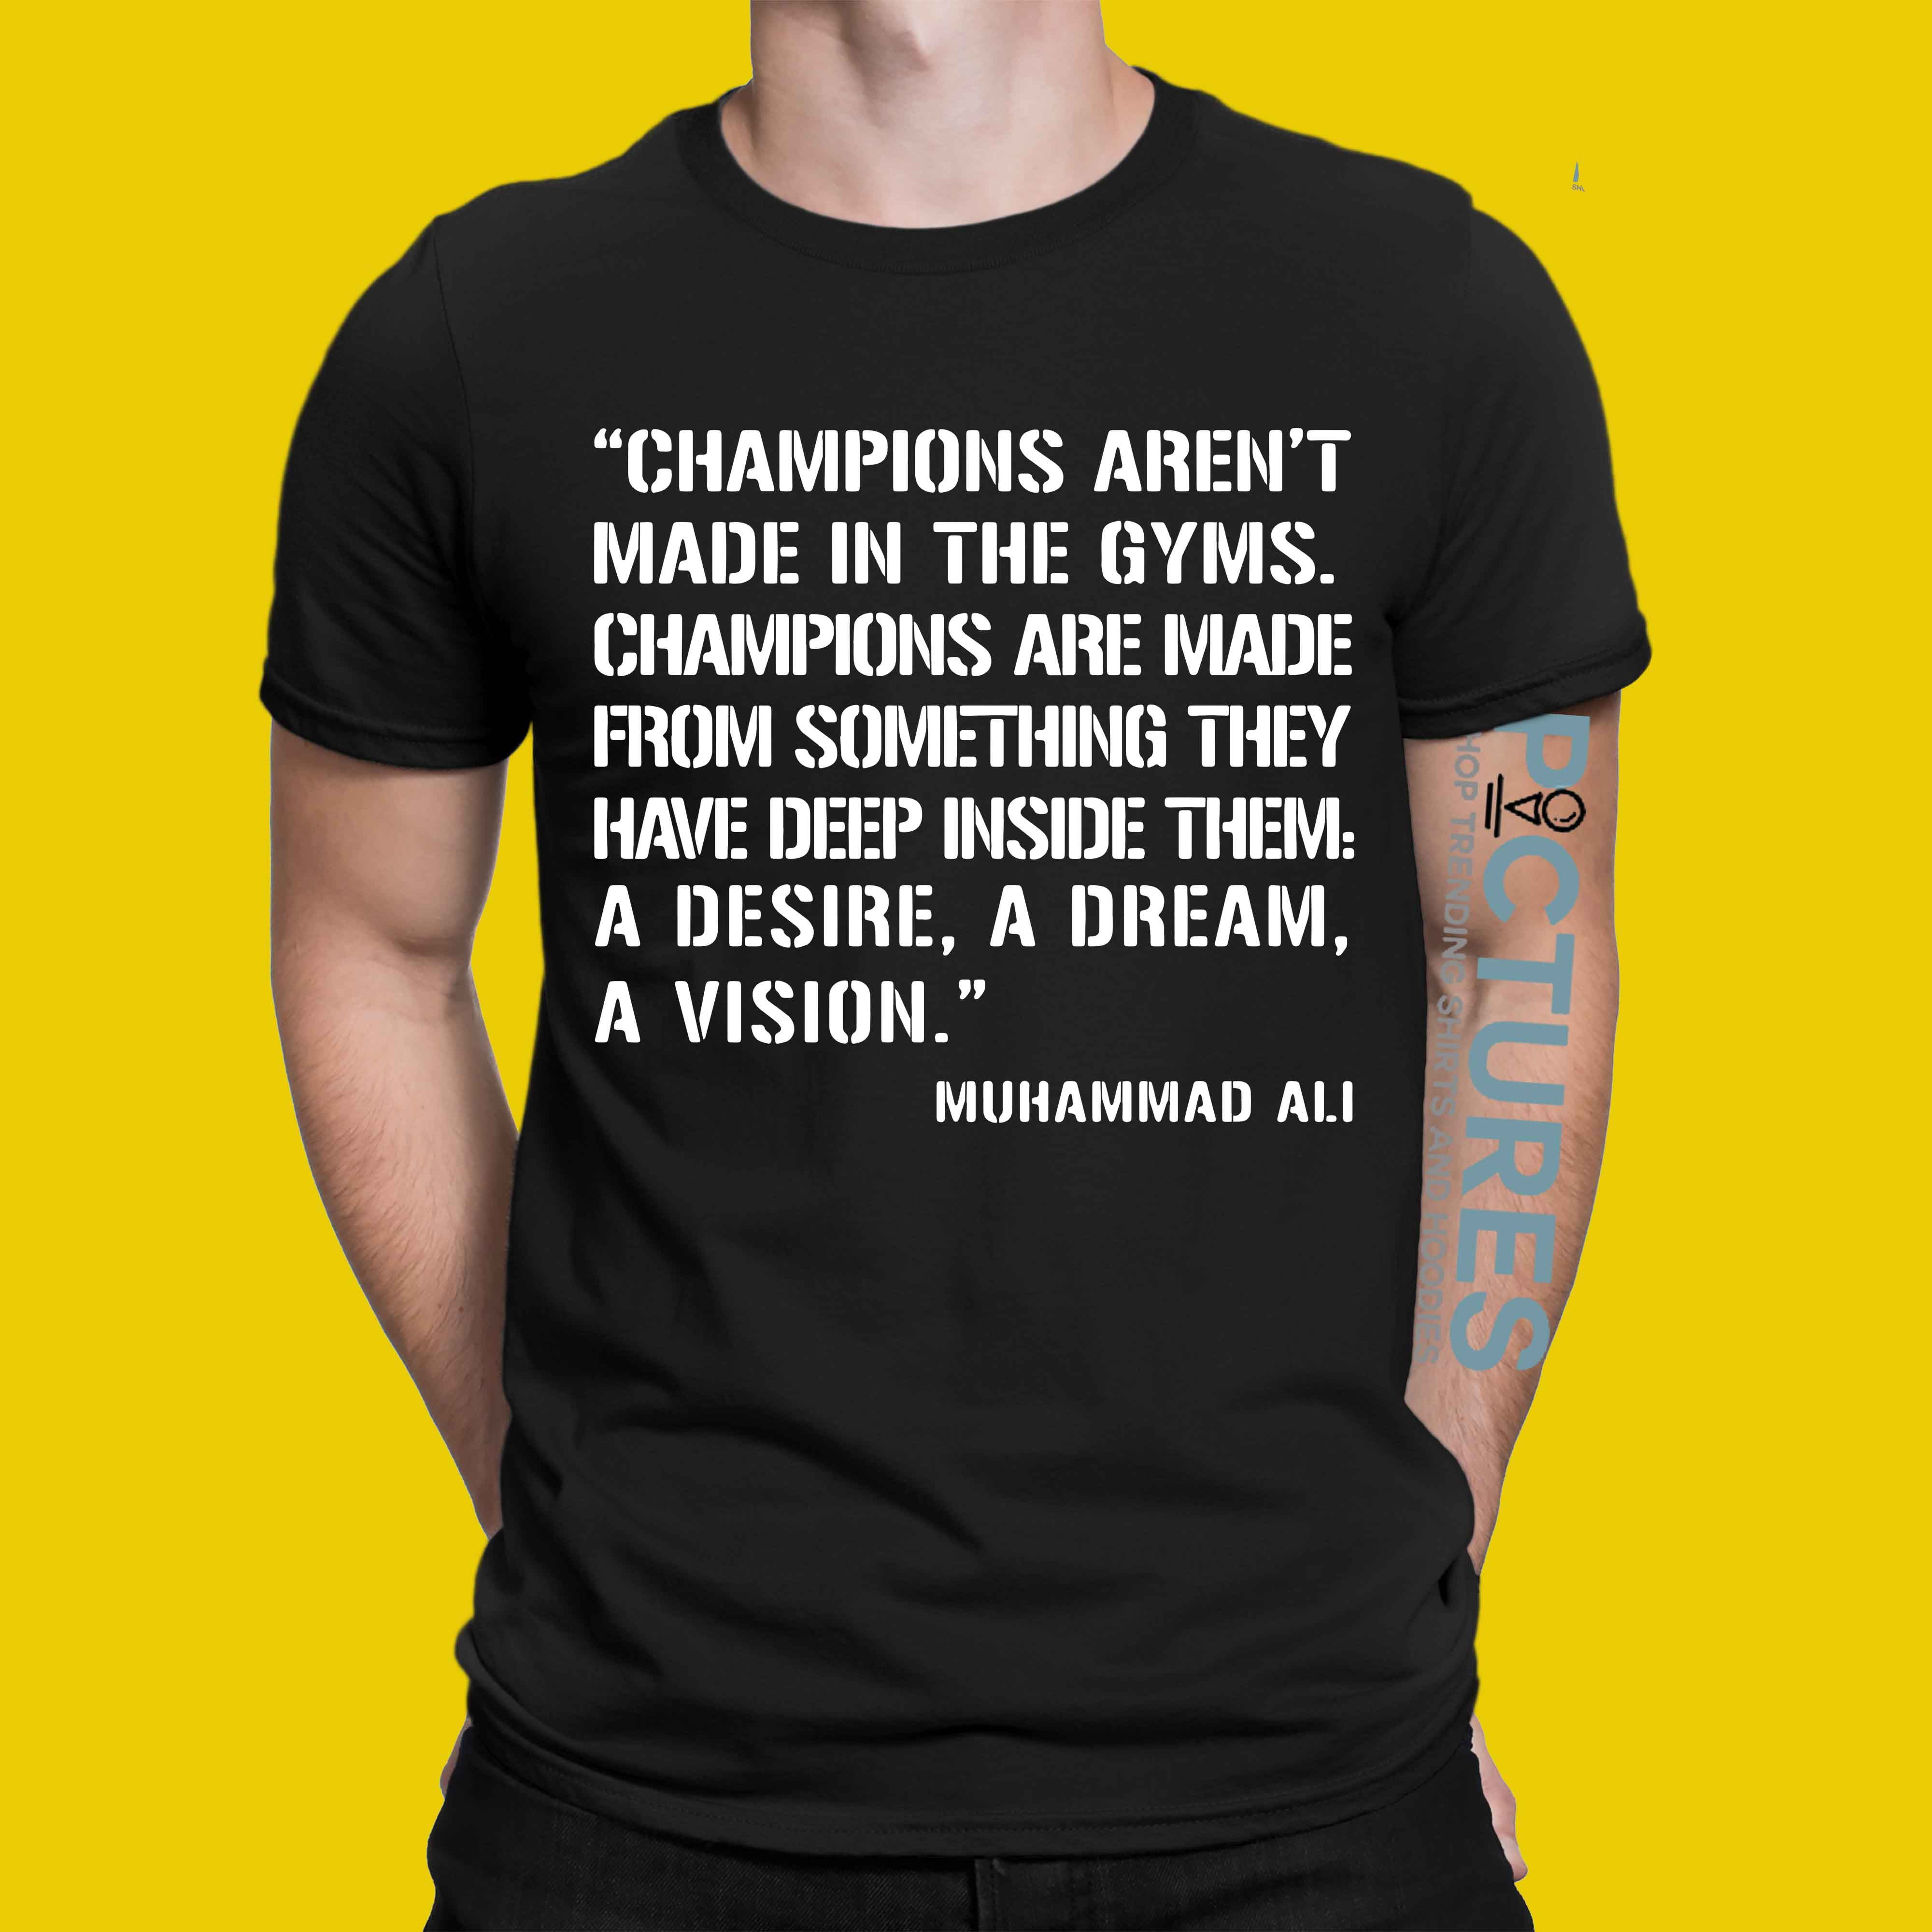 Champion Aren't Made In The Gyms shirt